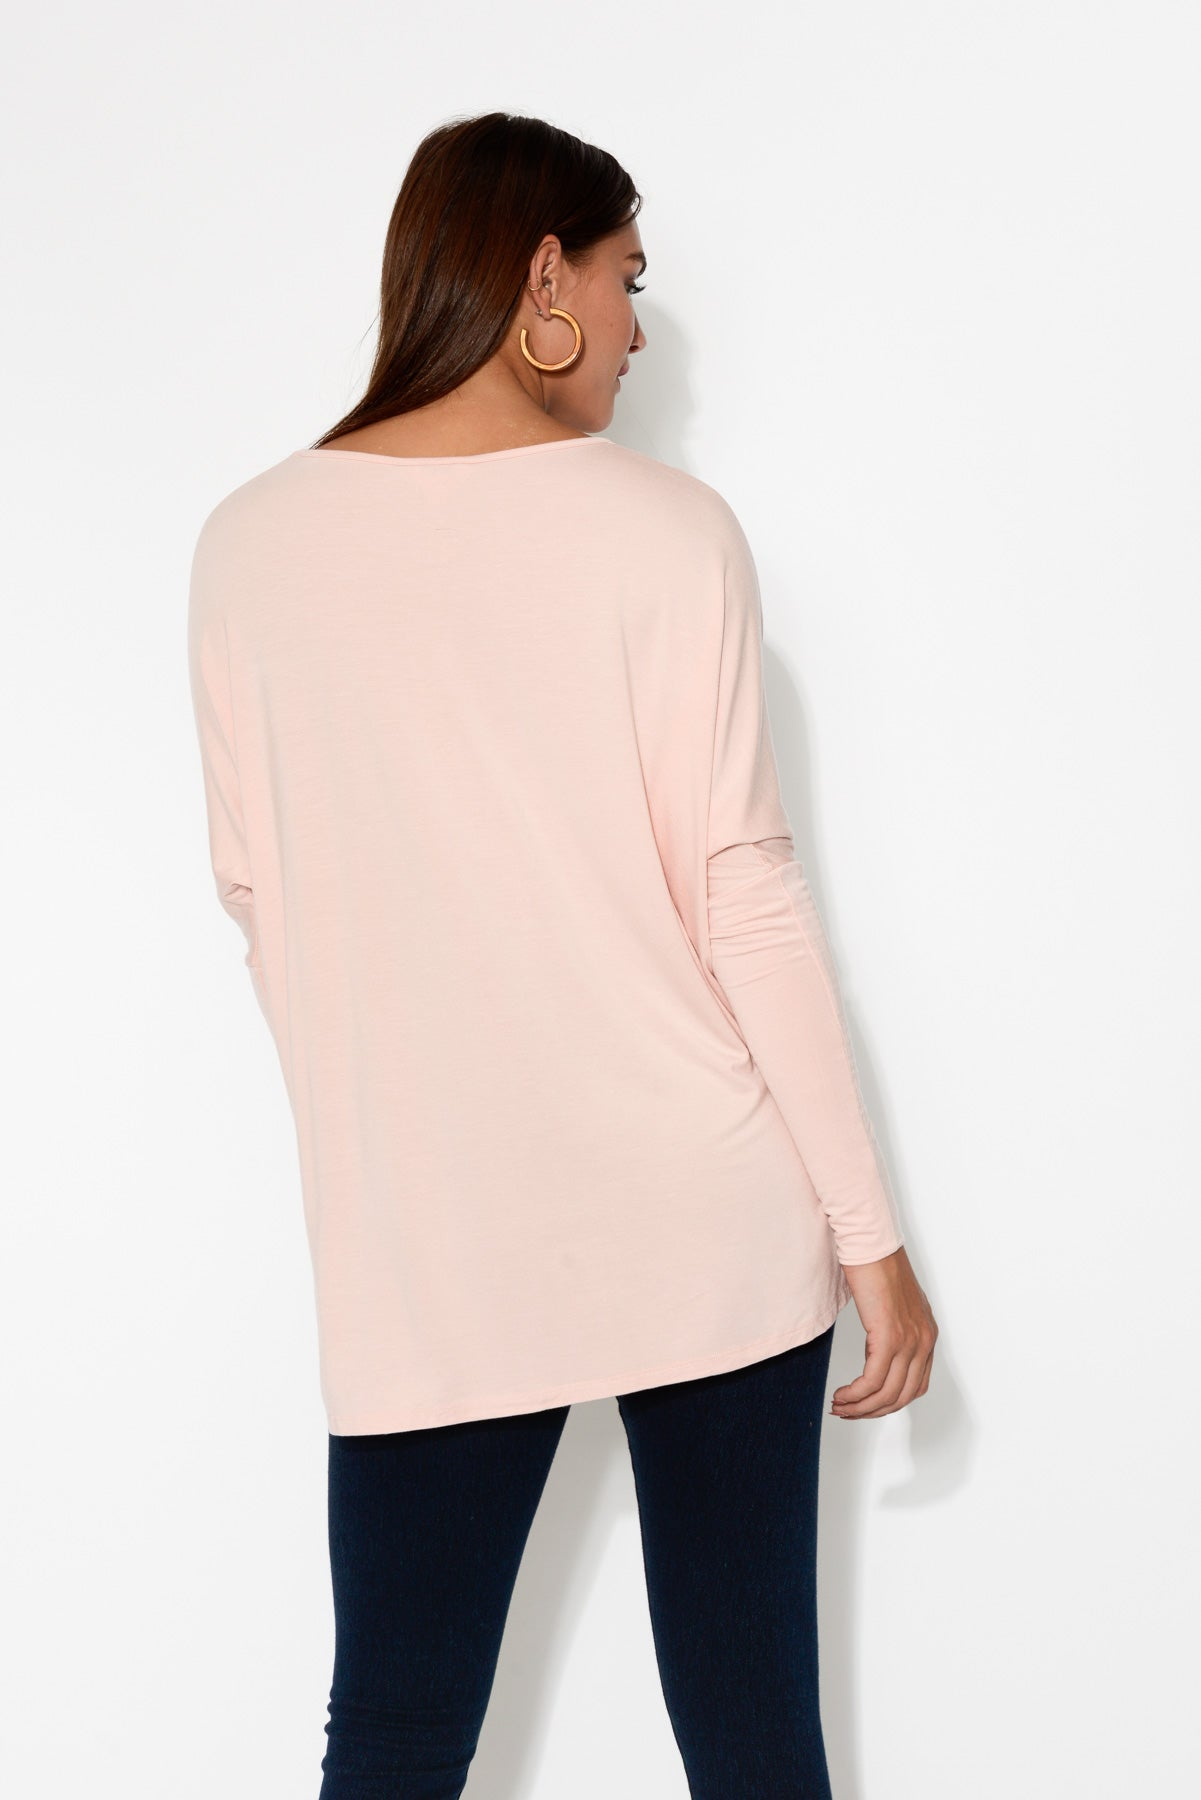 Liv Pink Sleeved Bamboo Top - Blue Bungalow